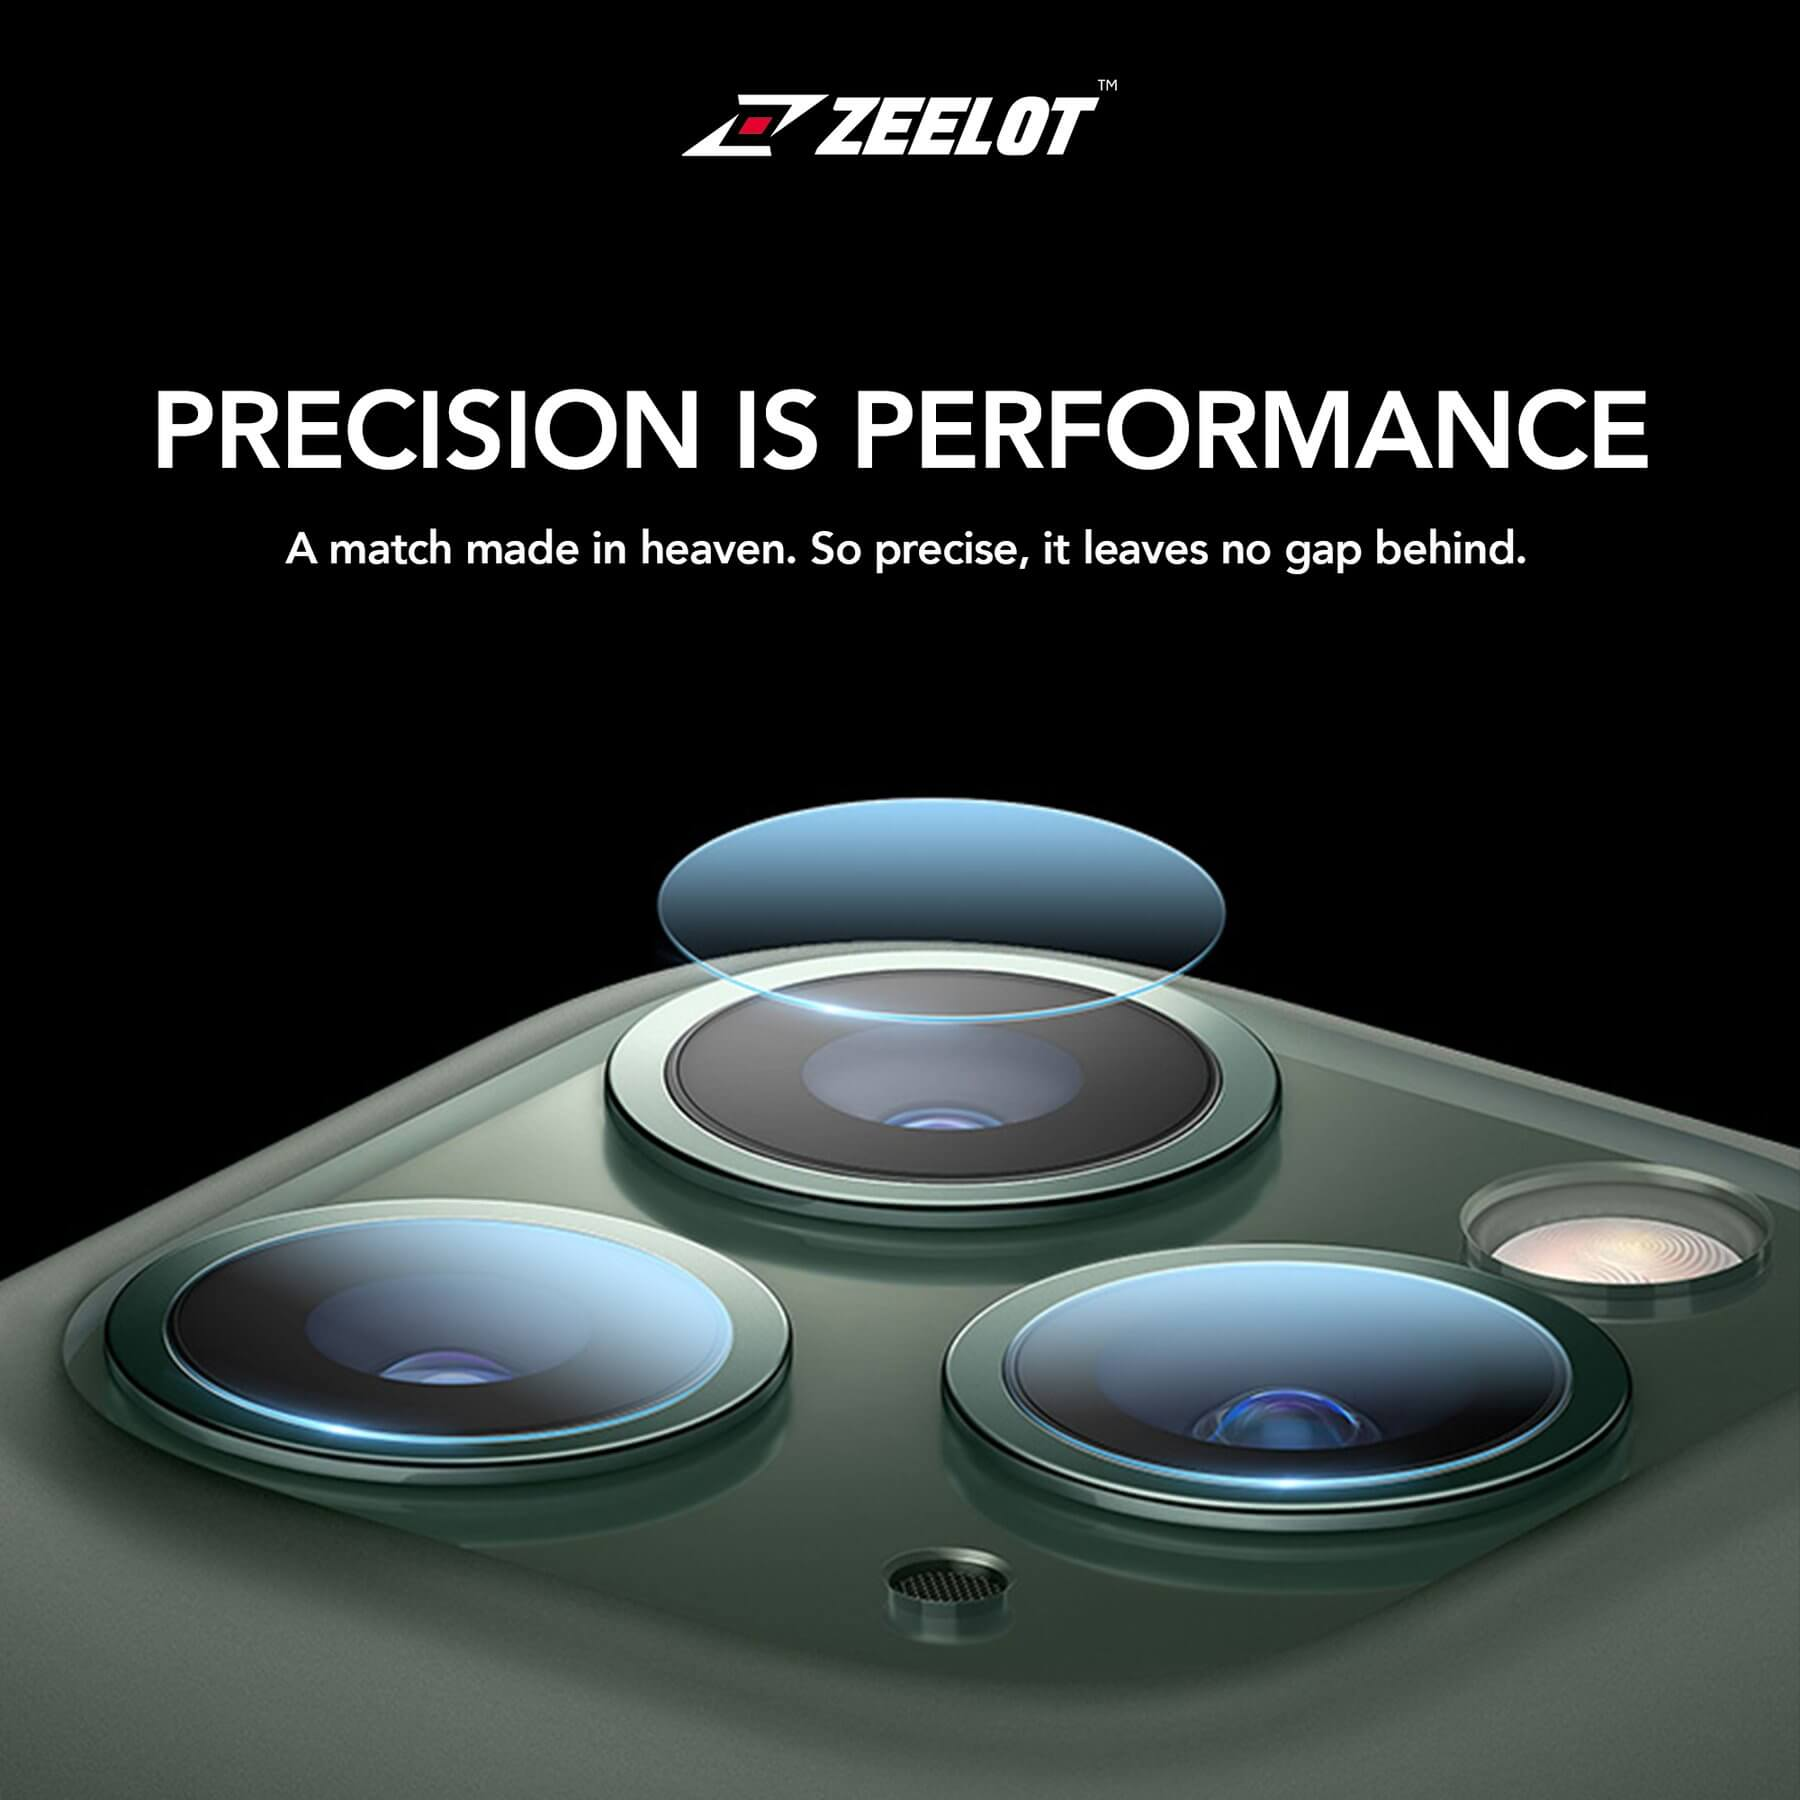 PRECISION_IS_PERFORMANCE_1800x1800